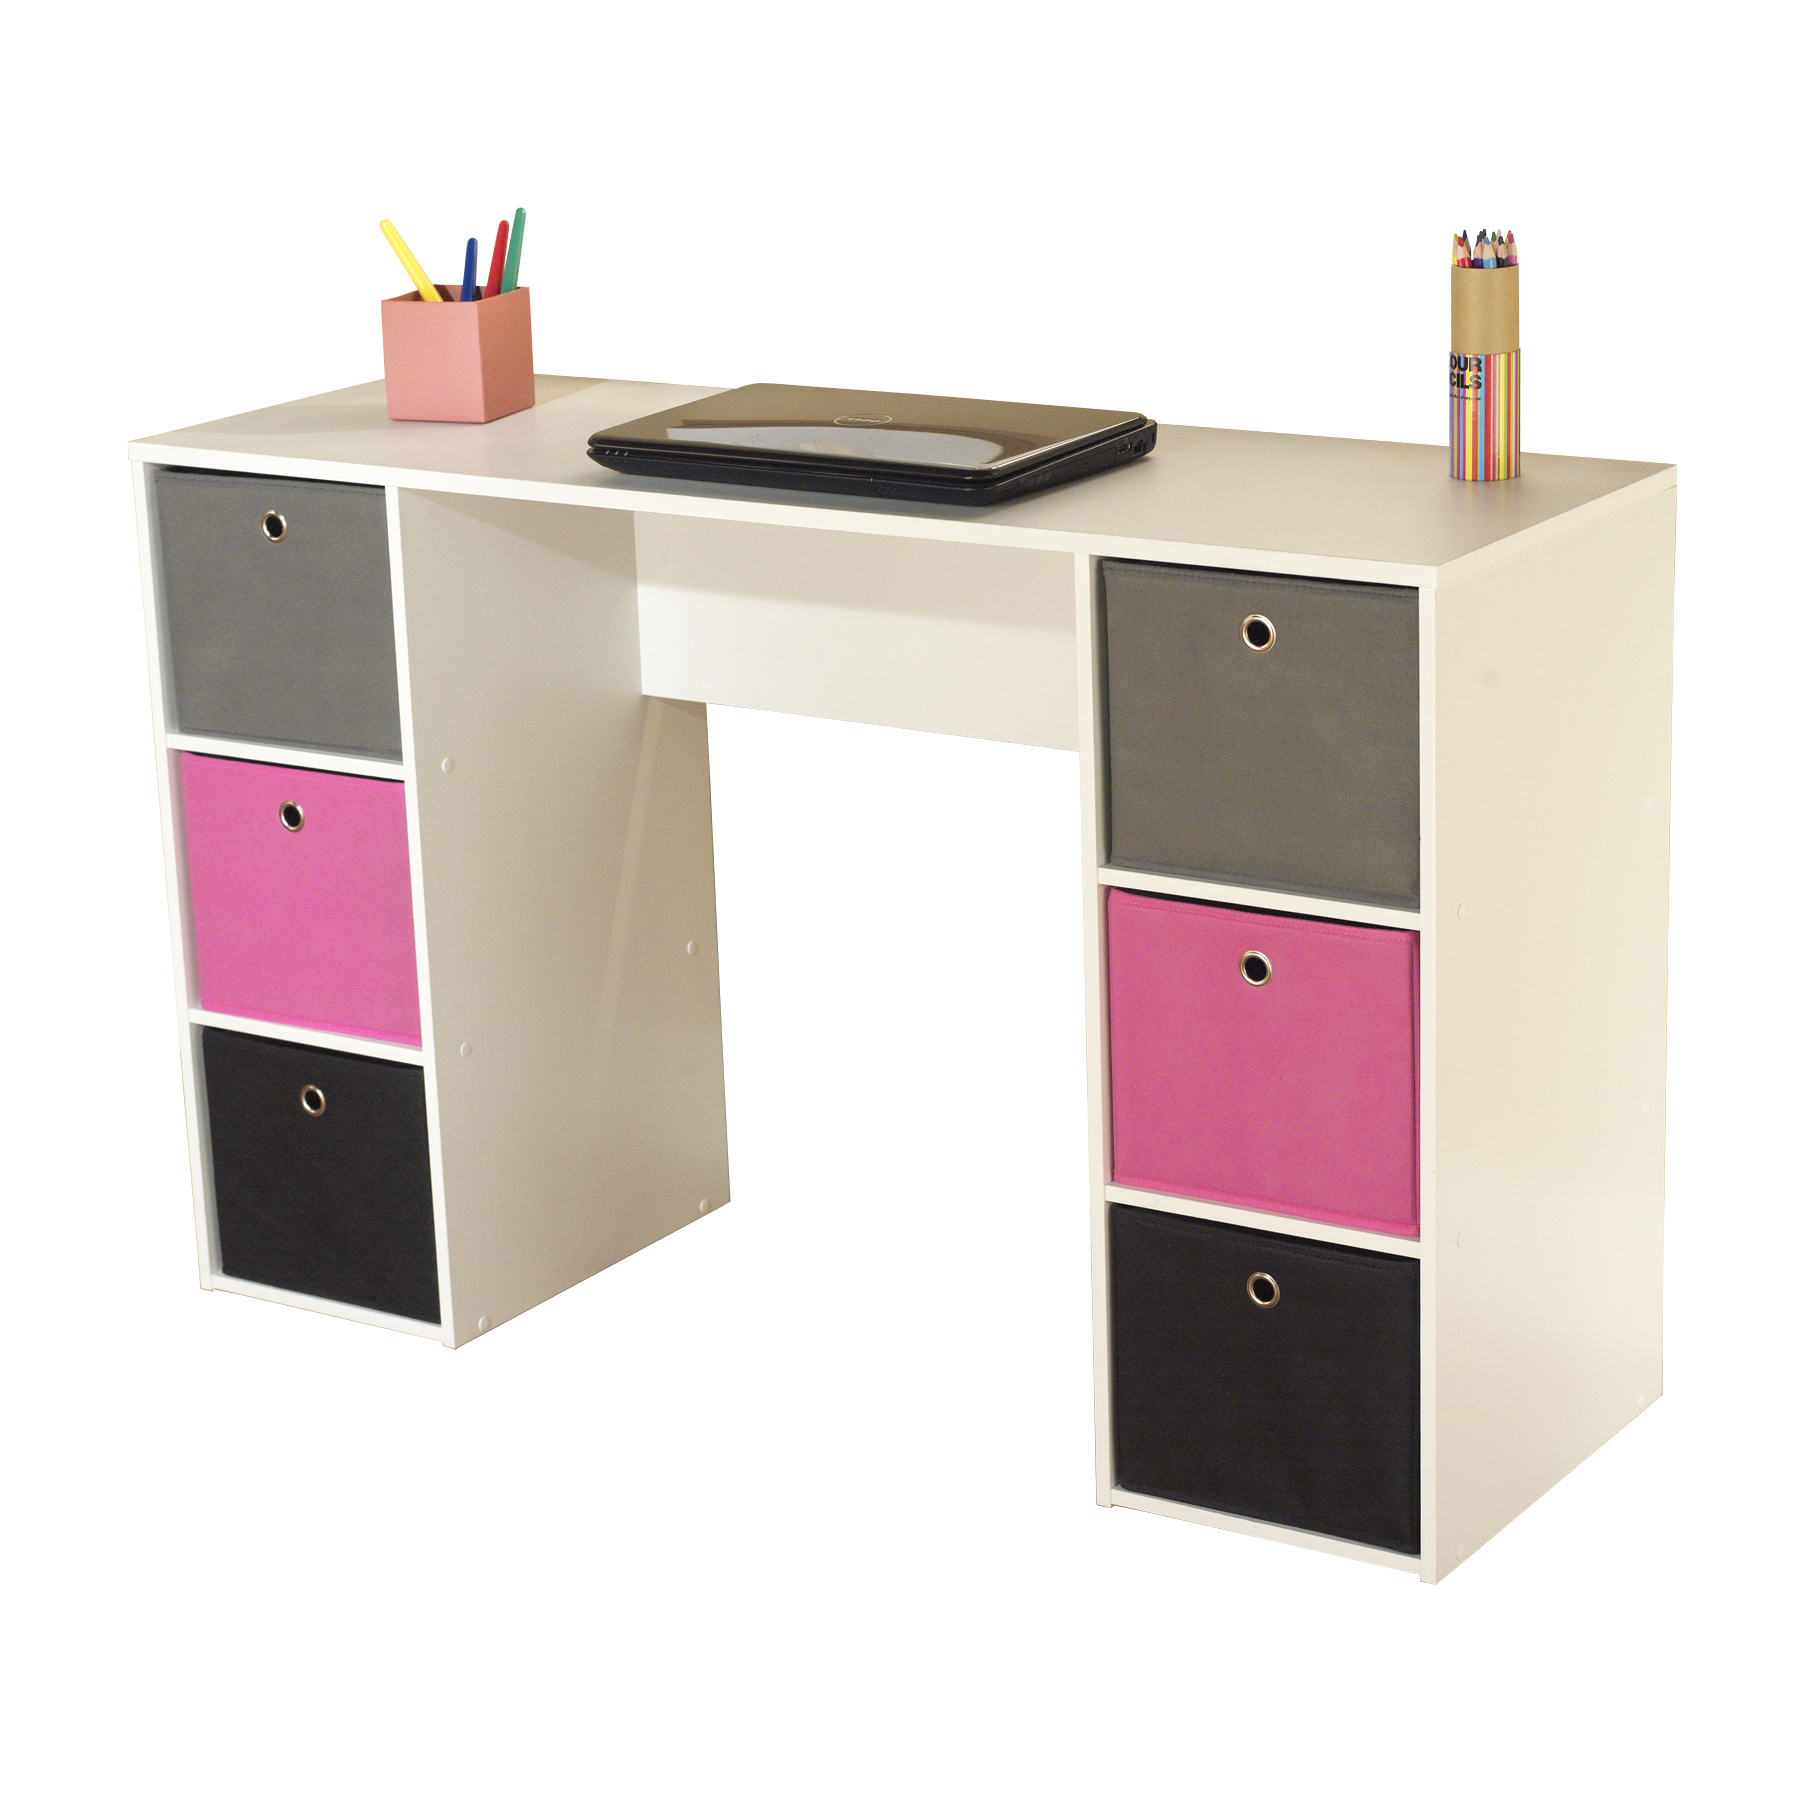 Get Hold Of A Childrens Desk   For Your Little One